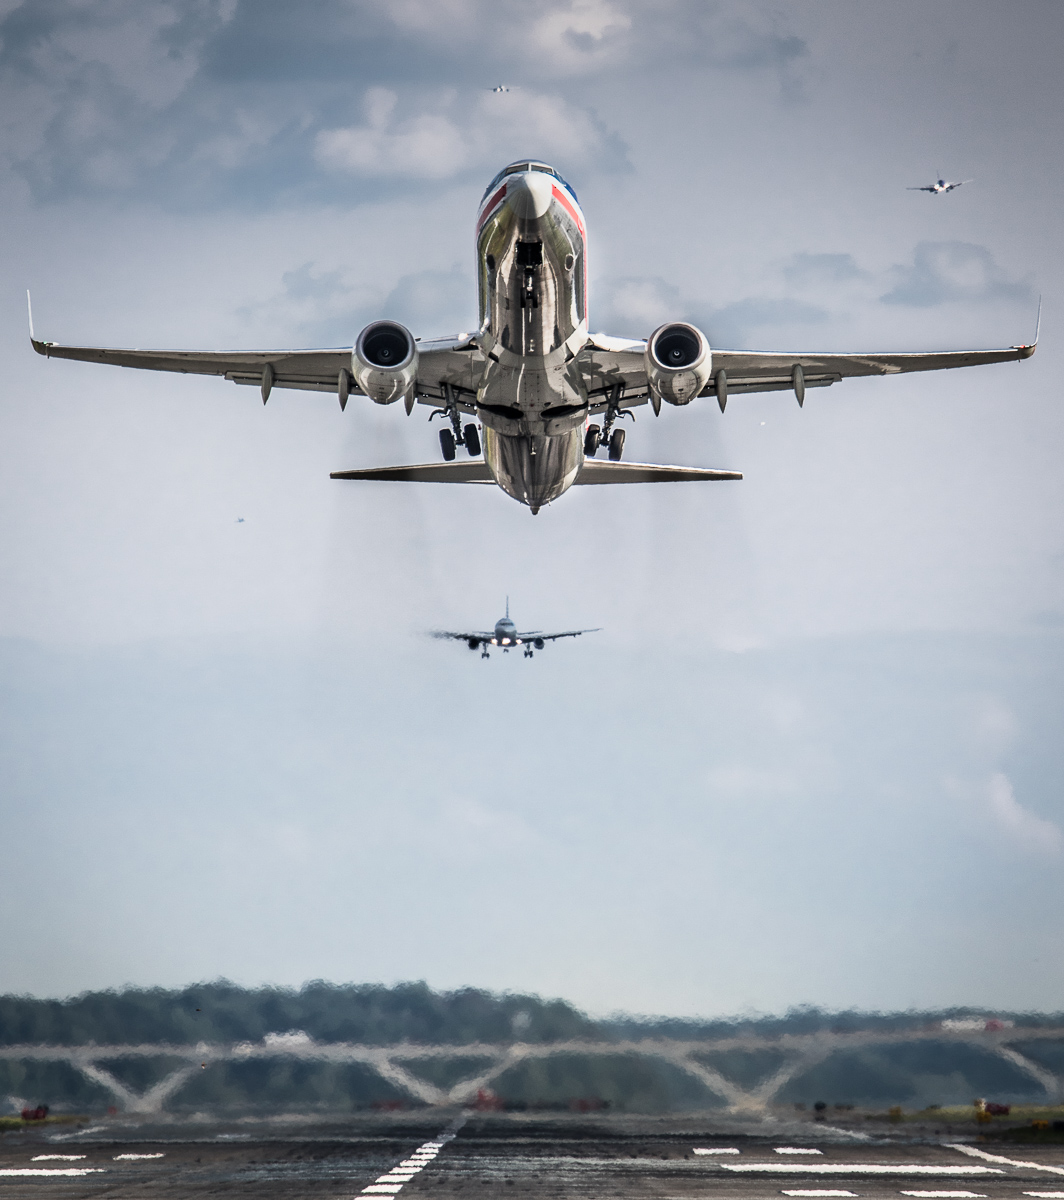 An American Airlines Boeing 737 taking off from National Airport near Washington DC, while five other airliners are preparing to land in the distance. (Finalist 2016 Smithsonian Air & Space Magazine photo competition, and Editors Pick for Aviation Week & Space Technology photo competitions)